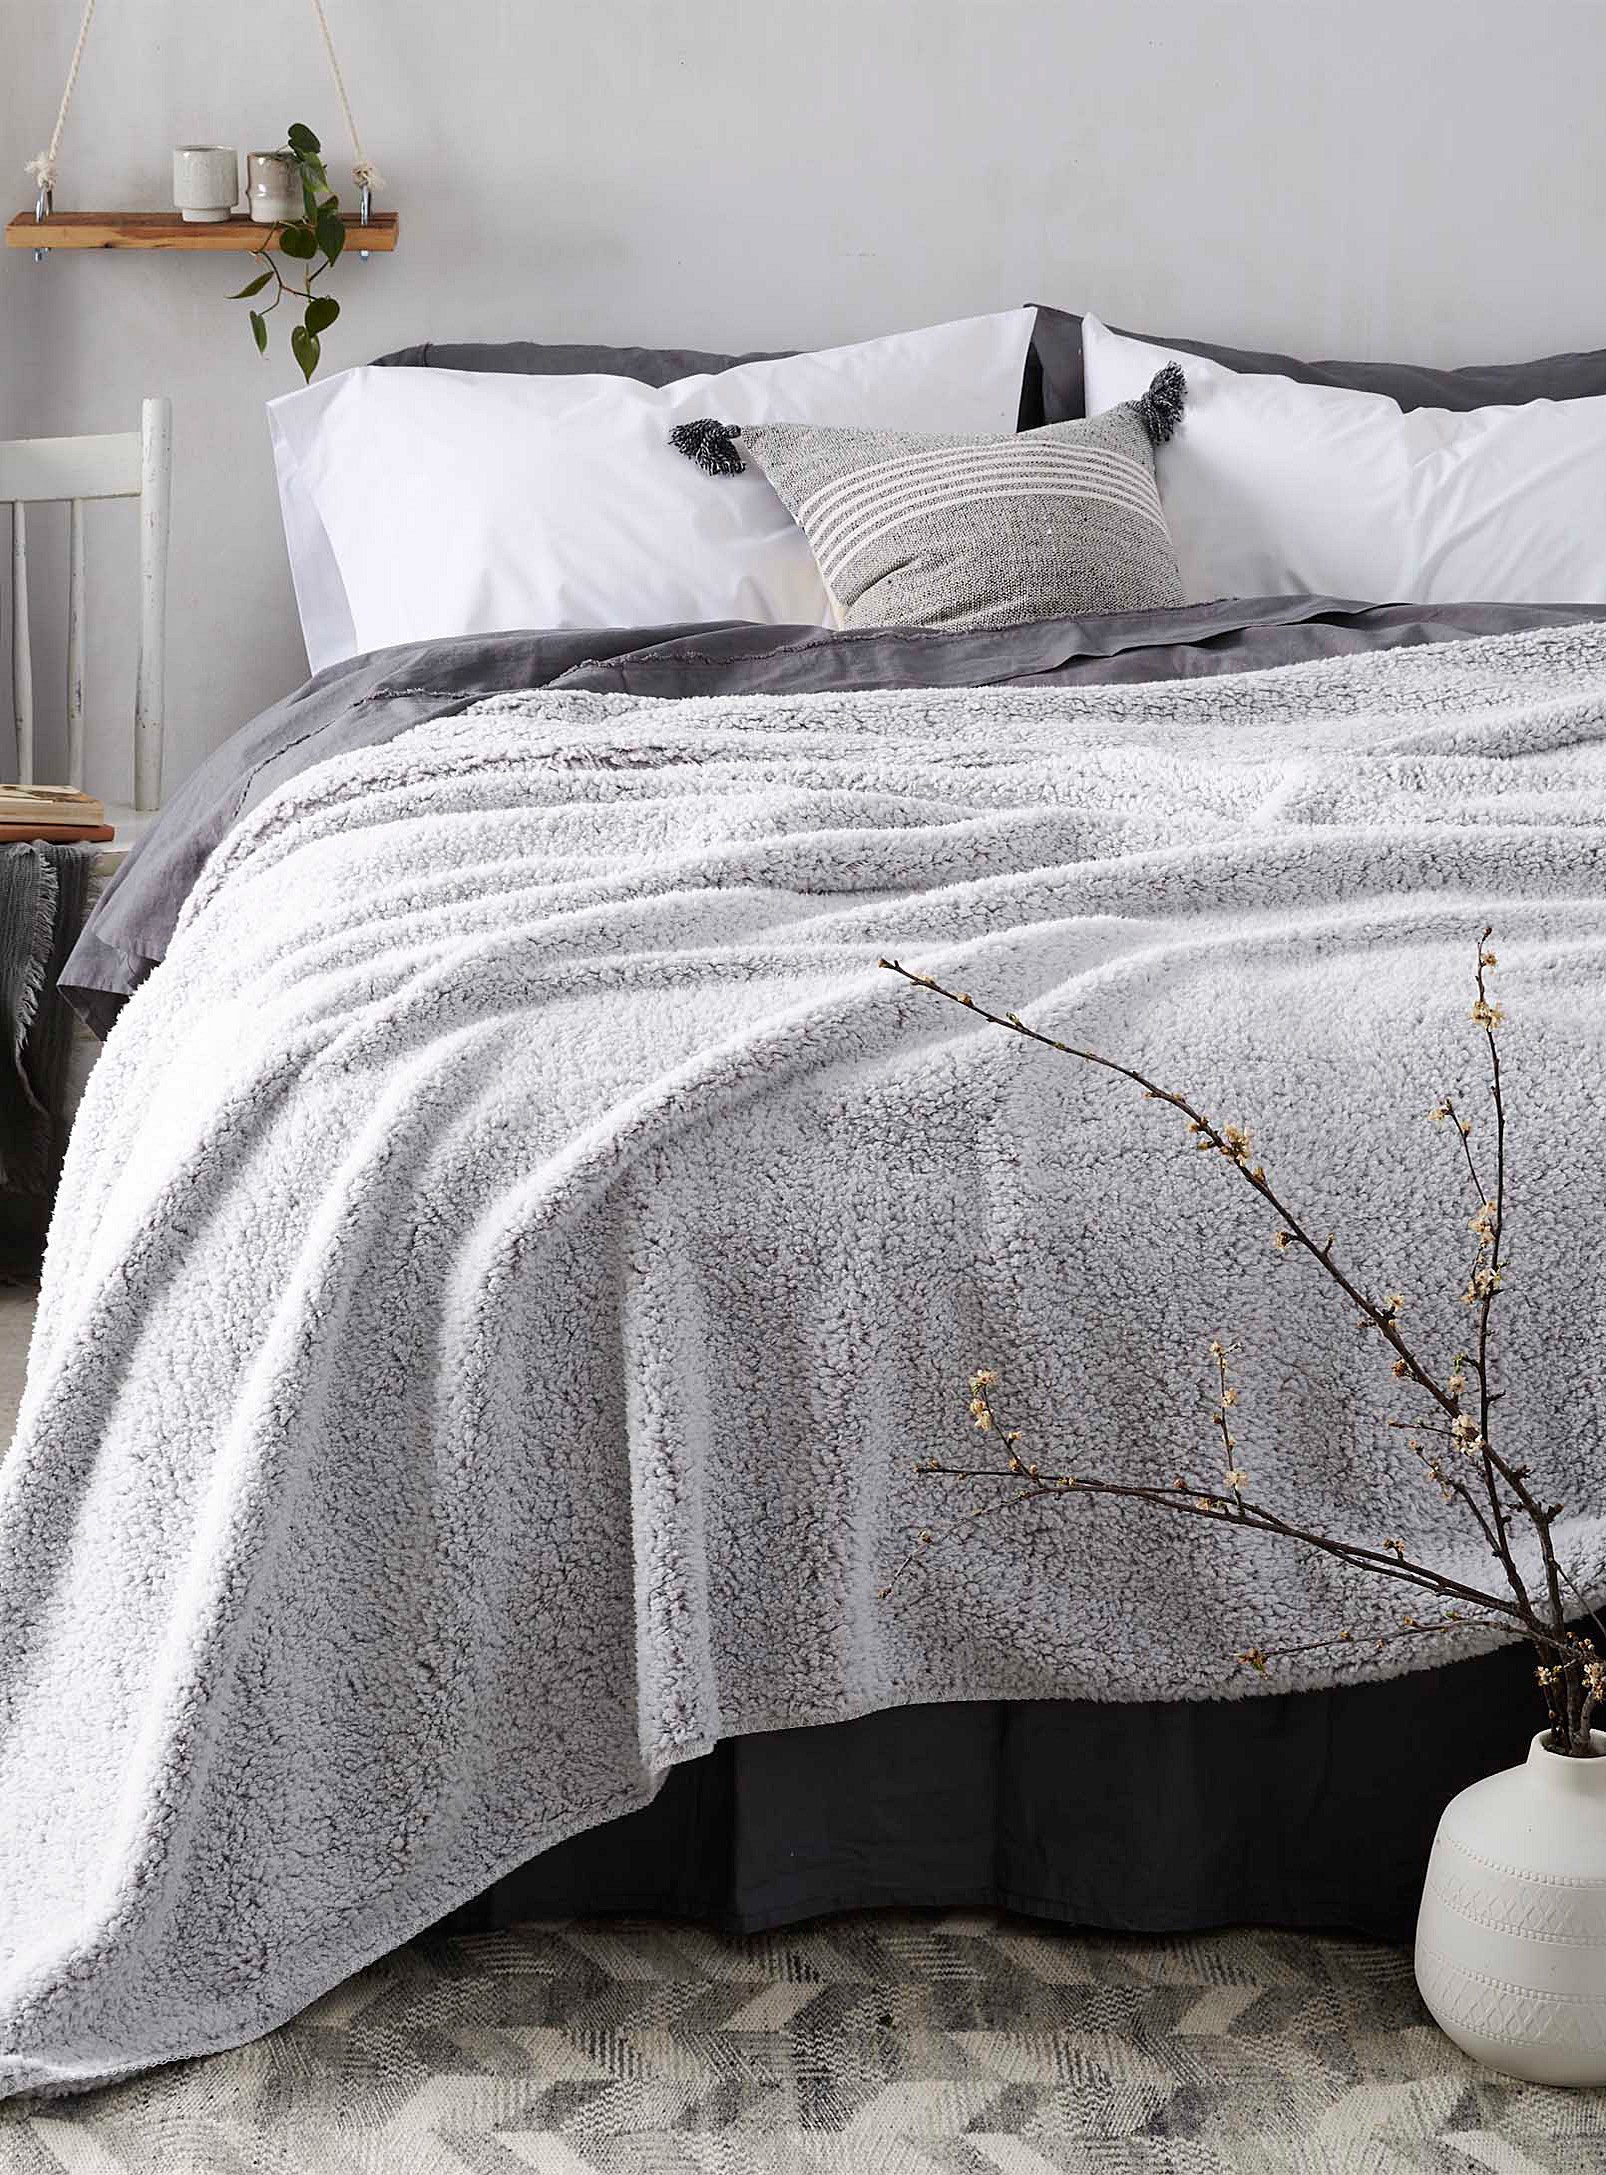 A fluffy blanket draped over a bed